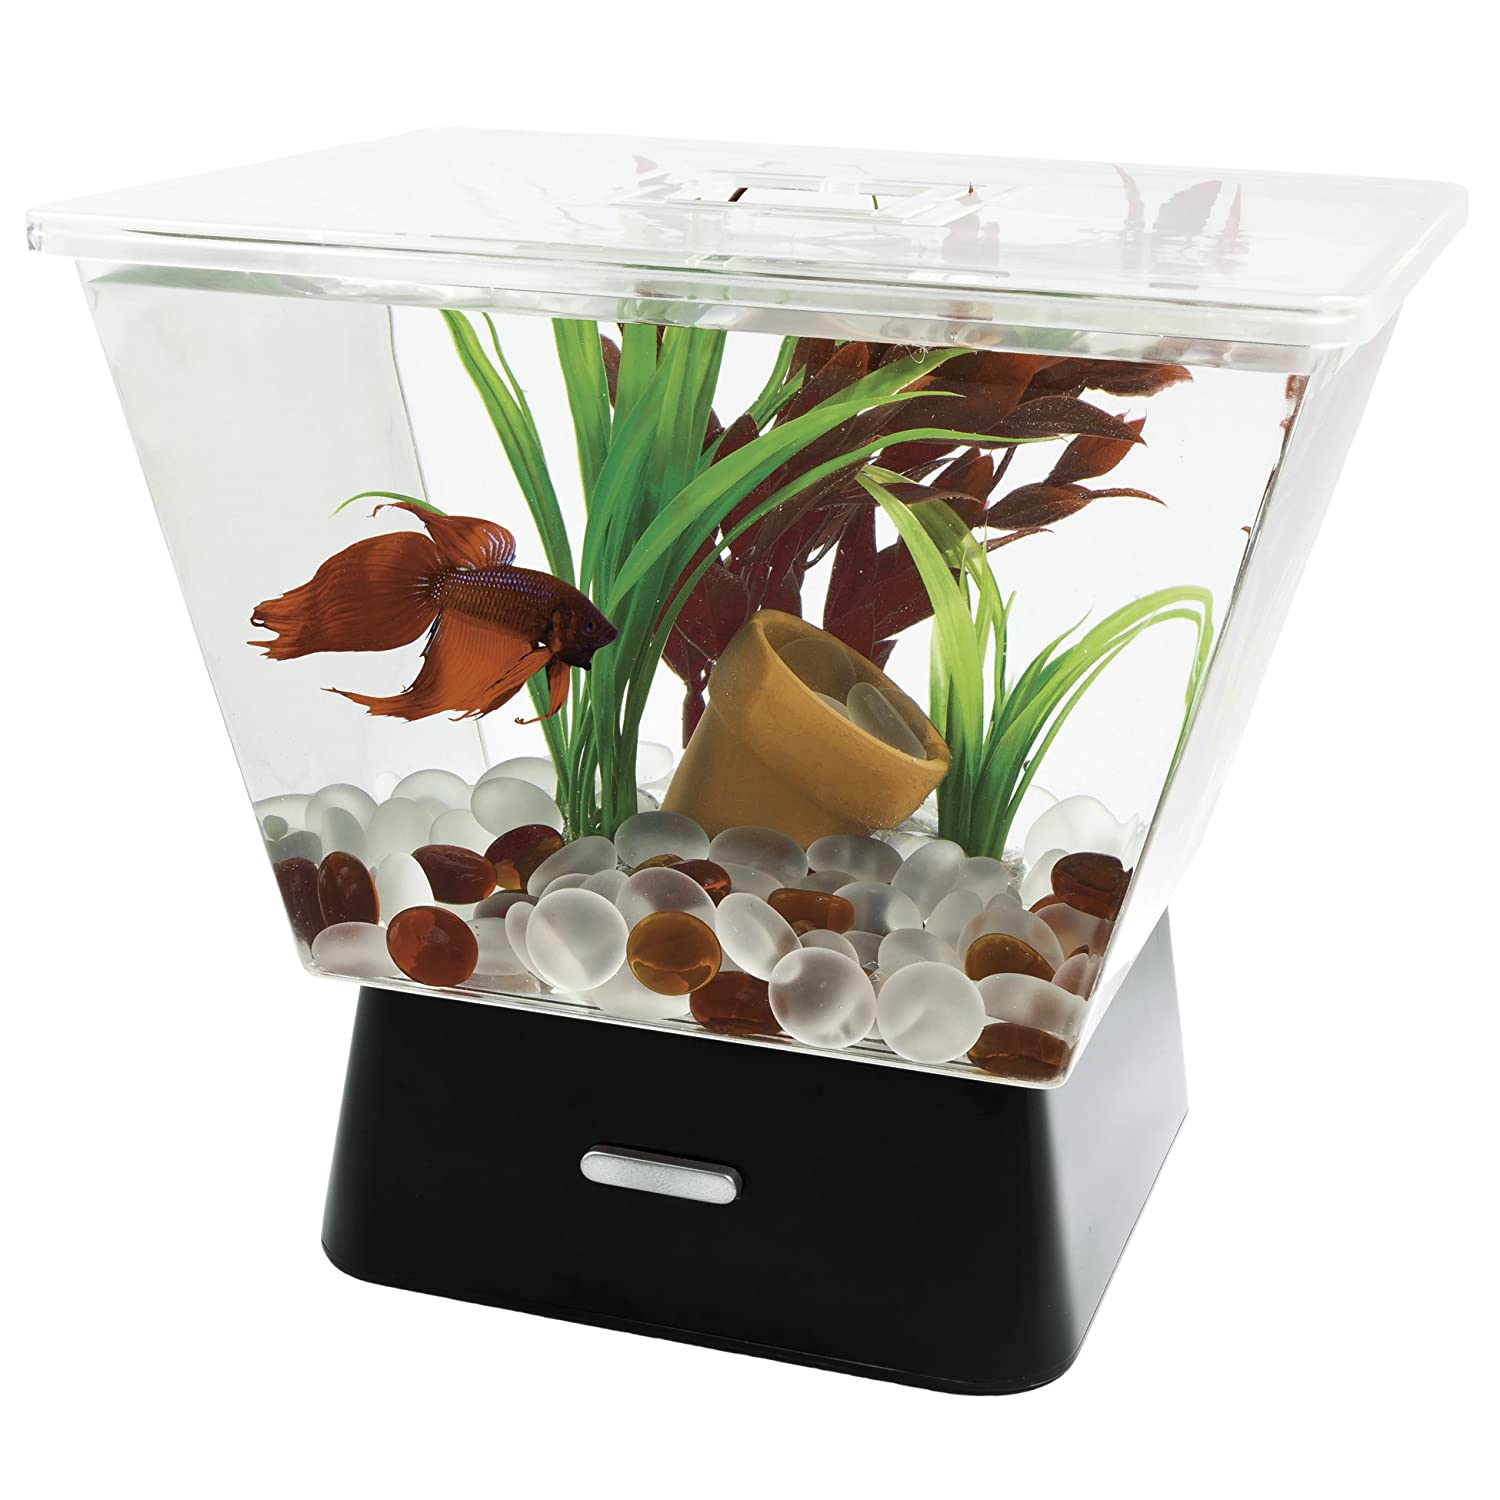 Fish Aquarium Rates In Delhi - Tetra 29050 led betta tank 1 gallon